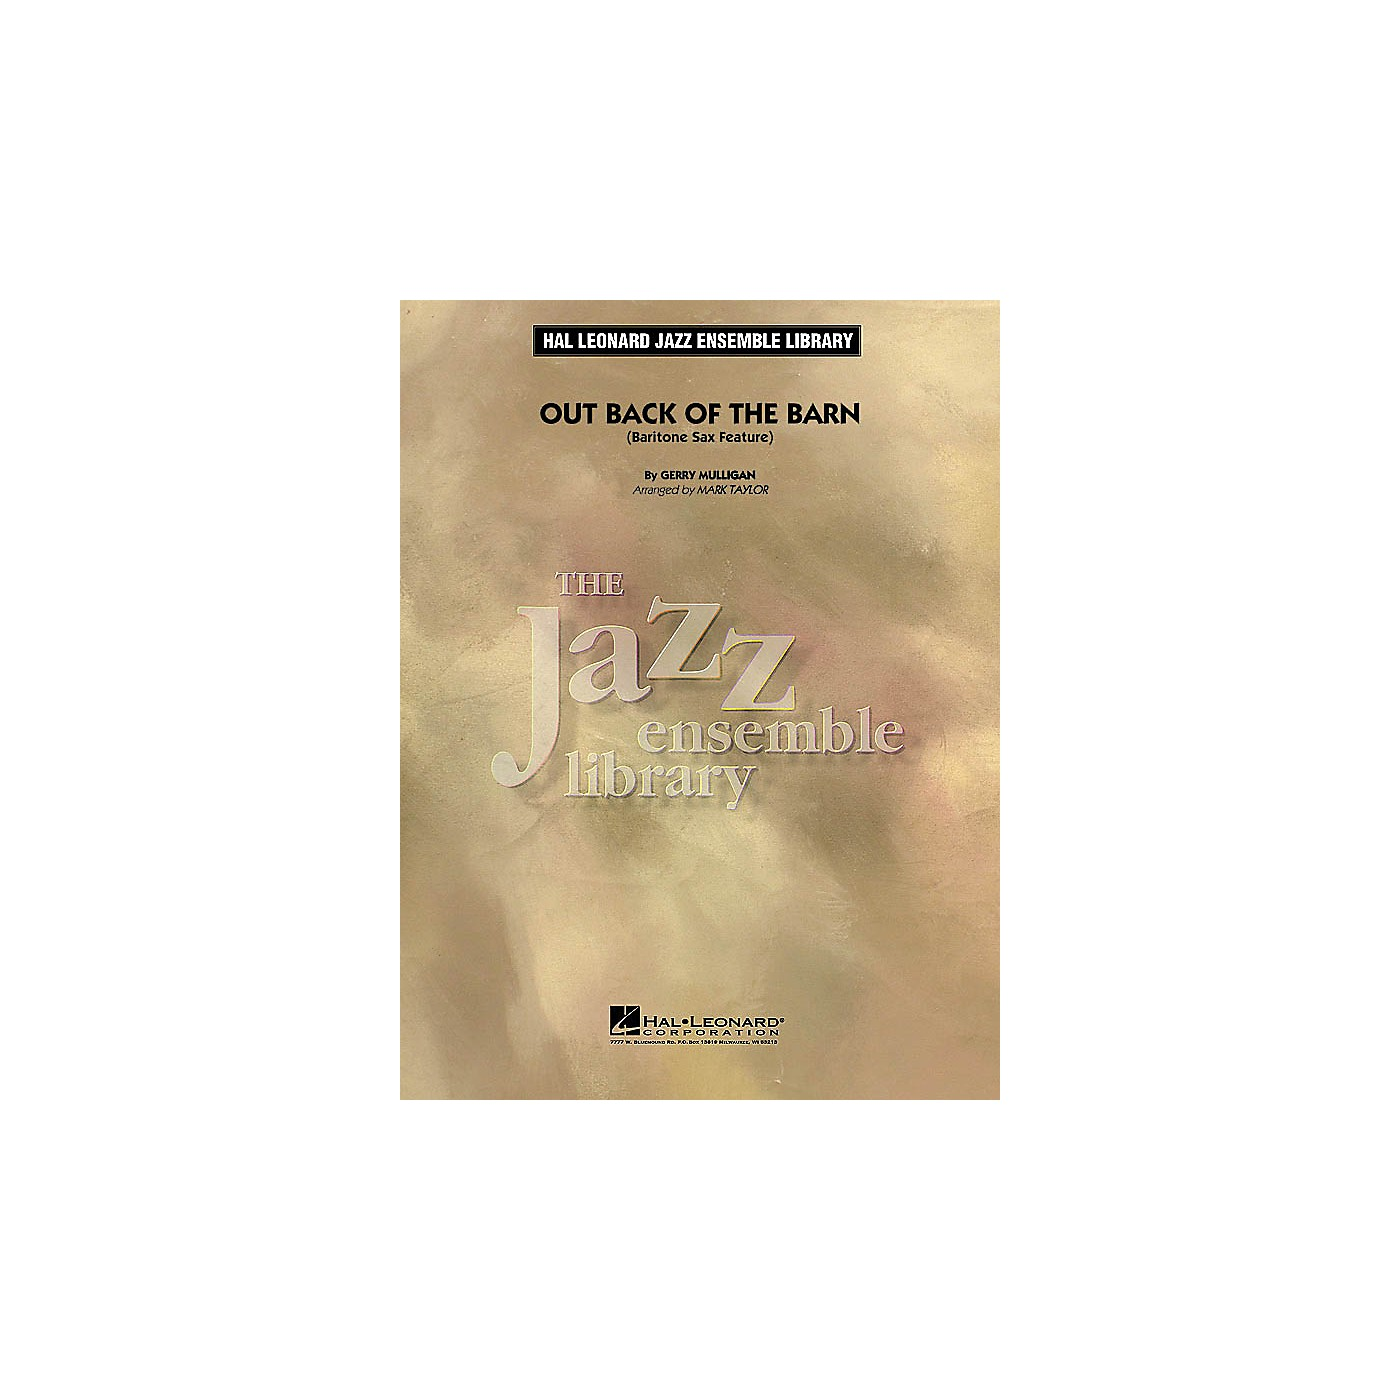 Hal Leonard Out Back of the Barn (Baritone Sax Feature) Jazz Band Level 4 Arranged by Mark Taylor thumbnail